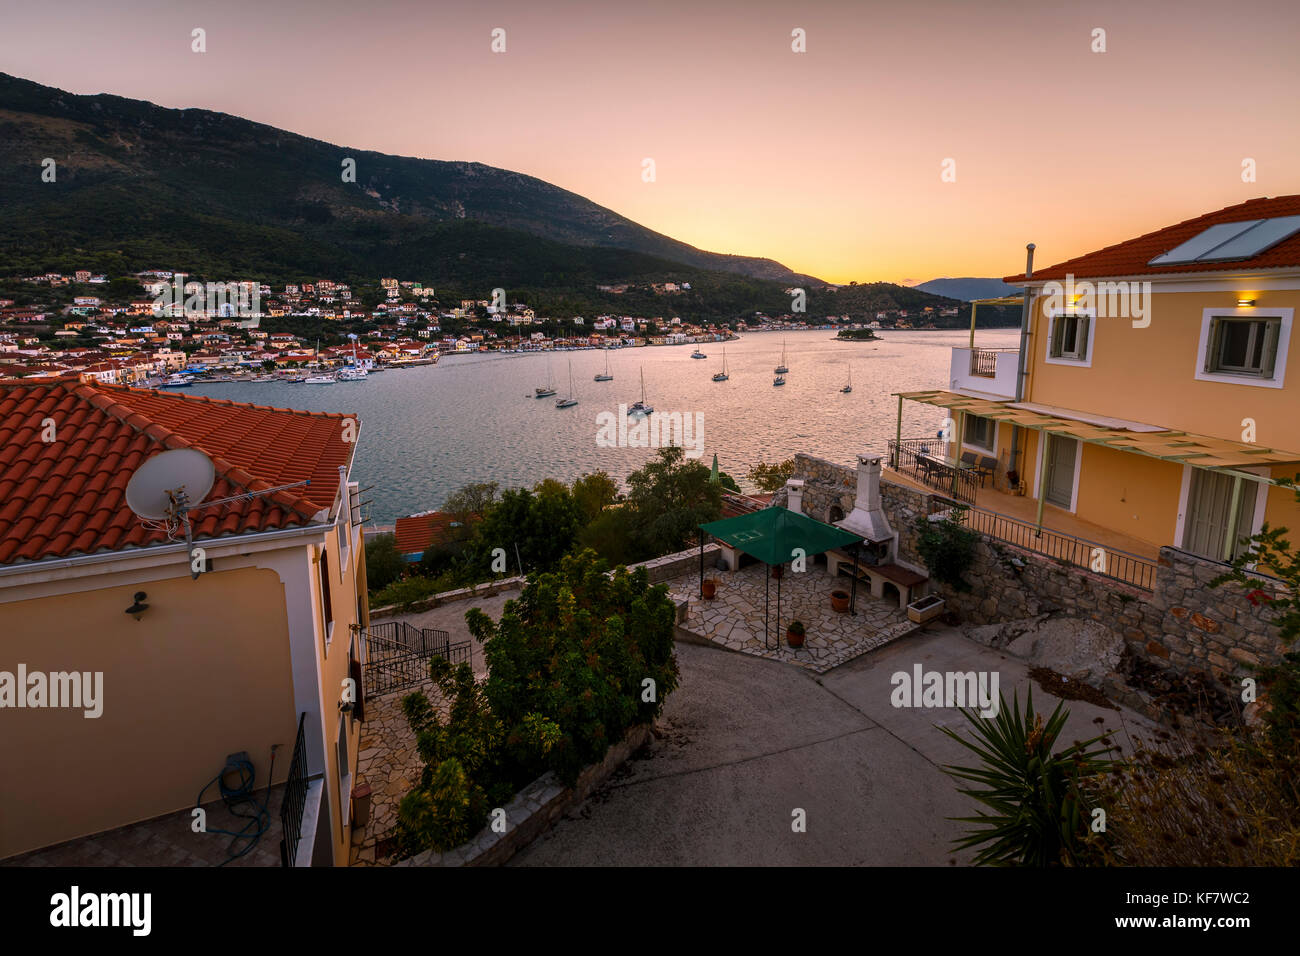 Vathy village and view of Molos Gulf in Ithaca island, Greece. - Stock Image